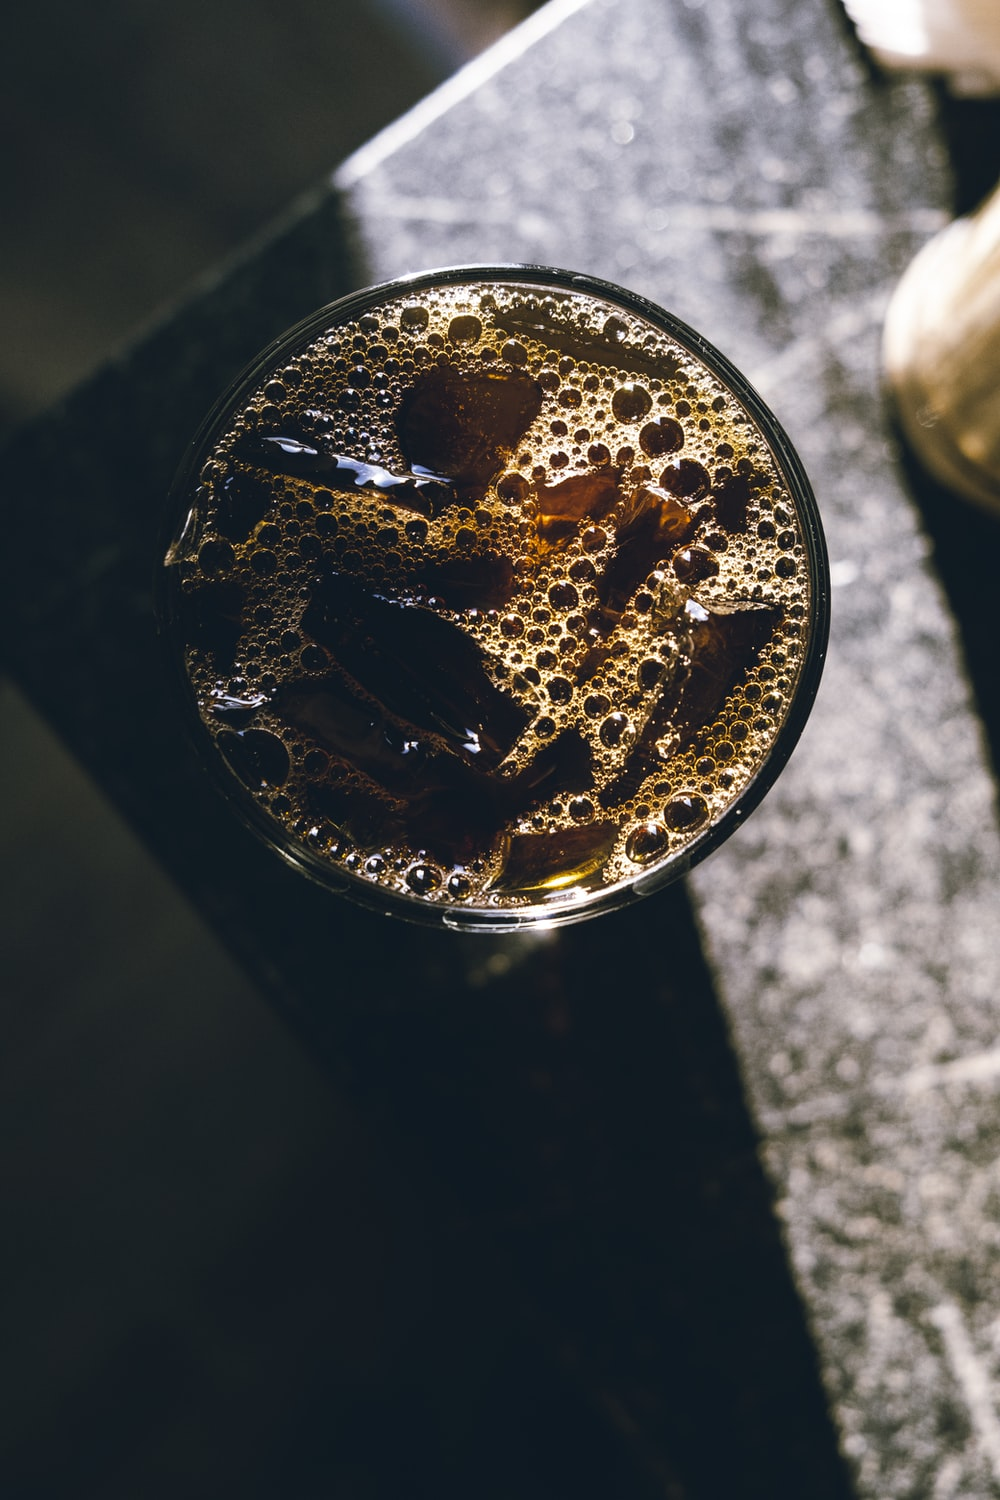 iced cold drinks in drinking glass